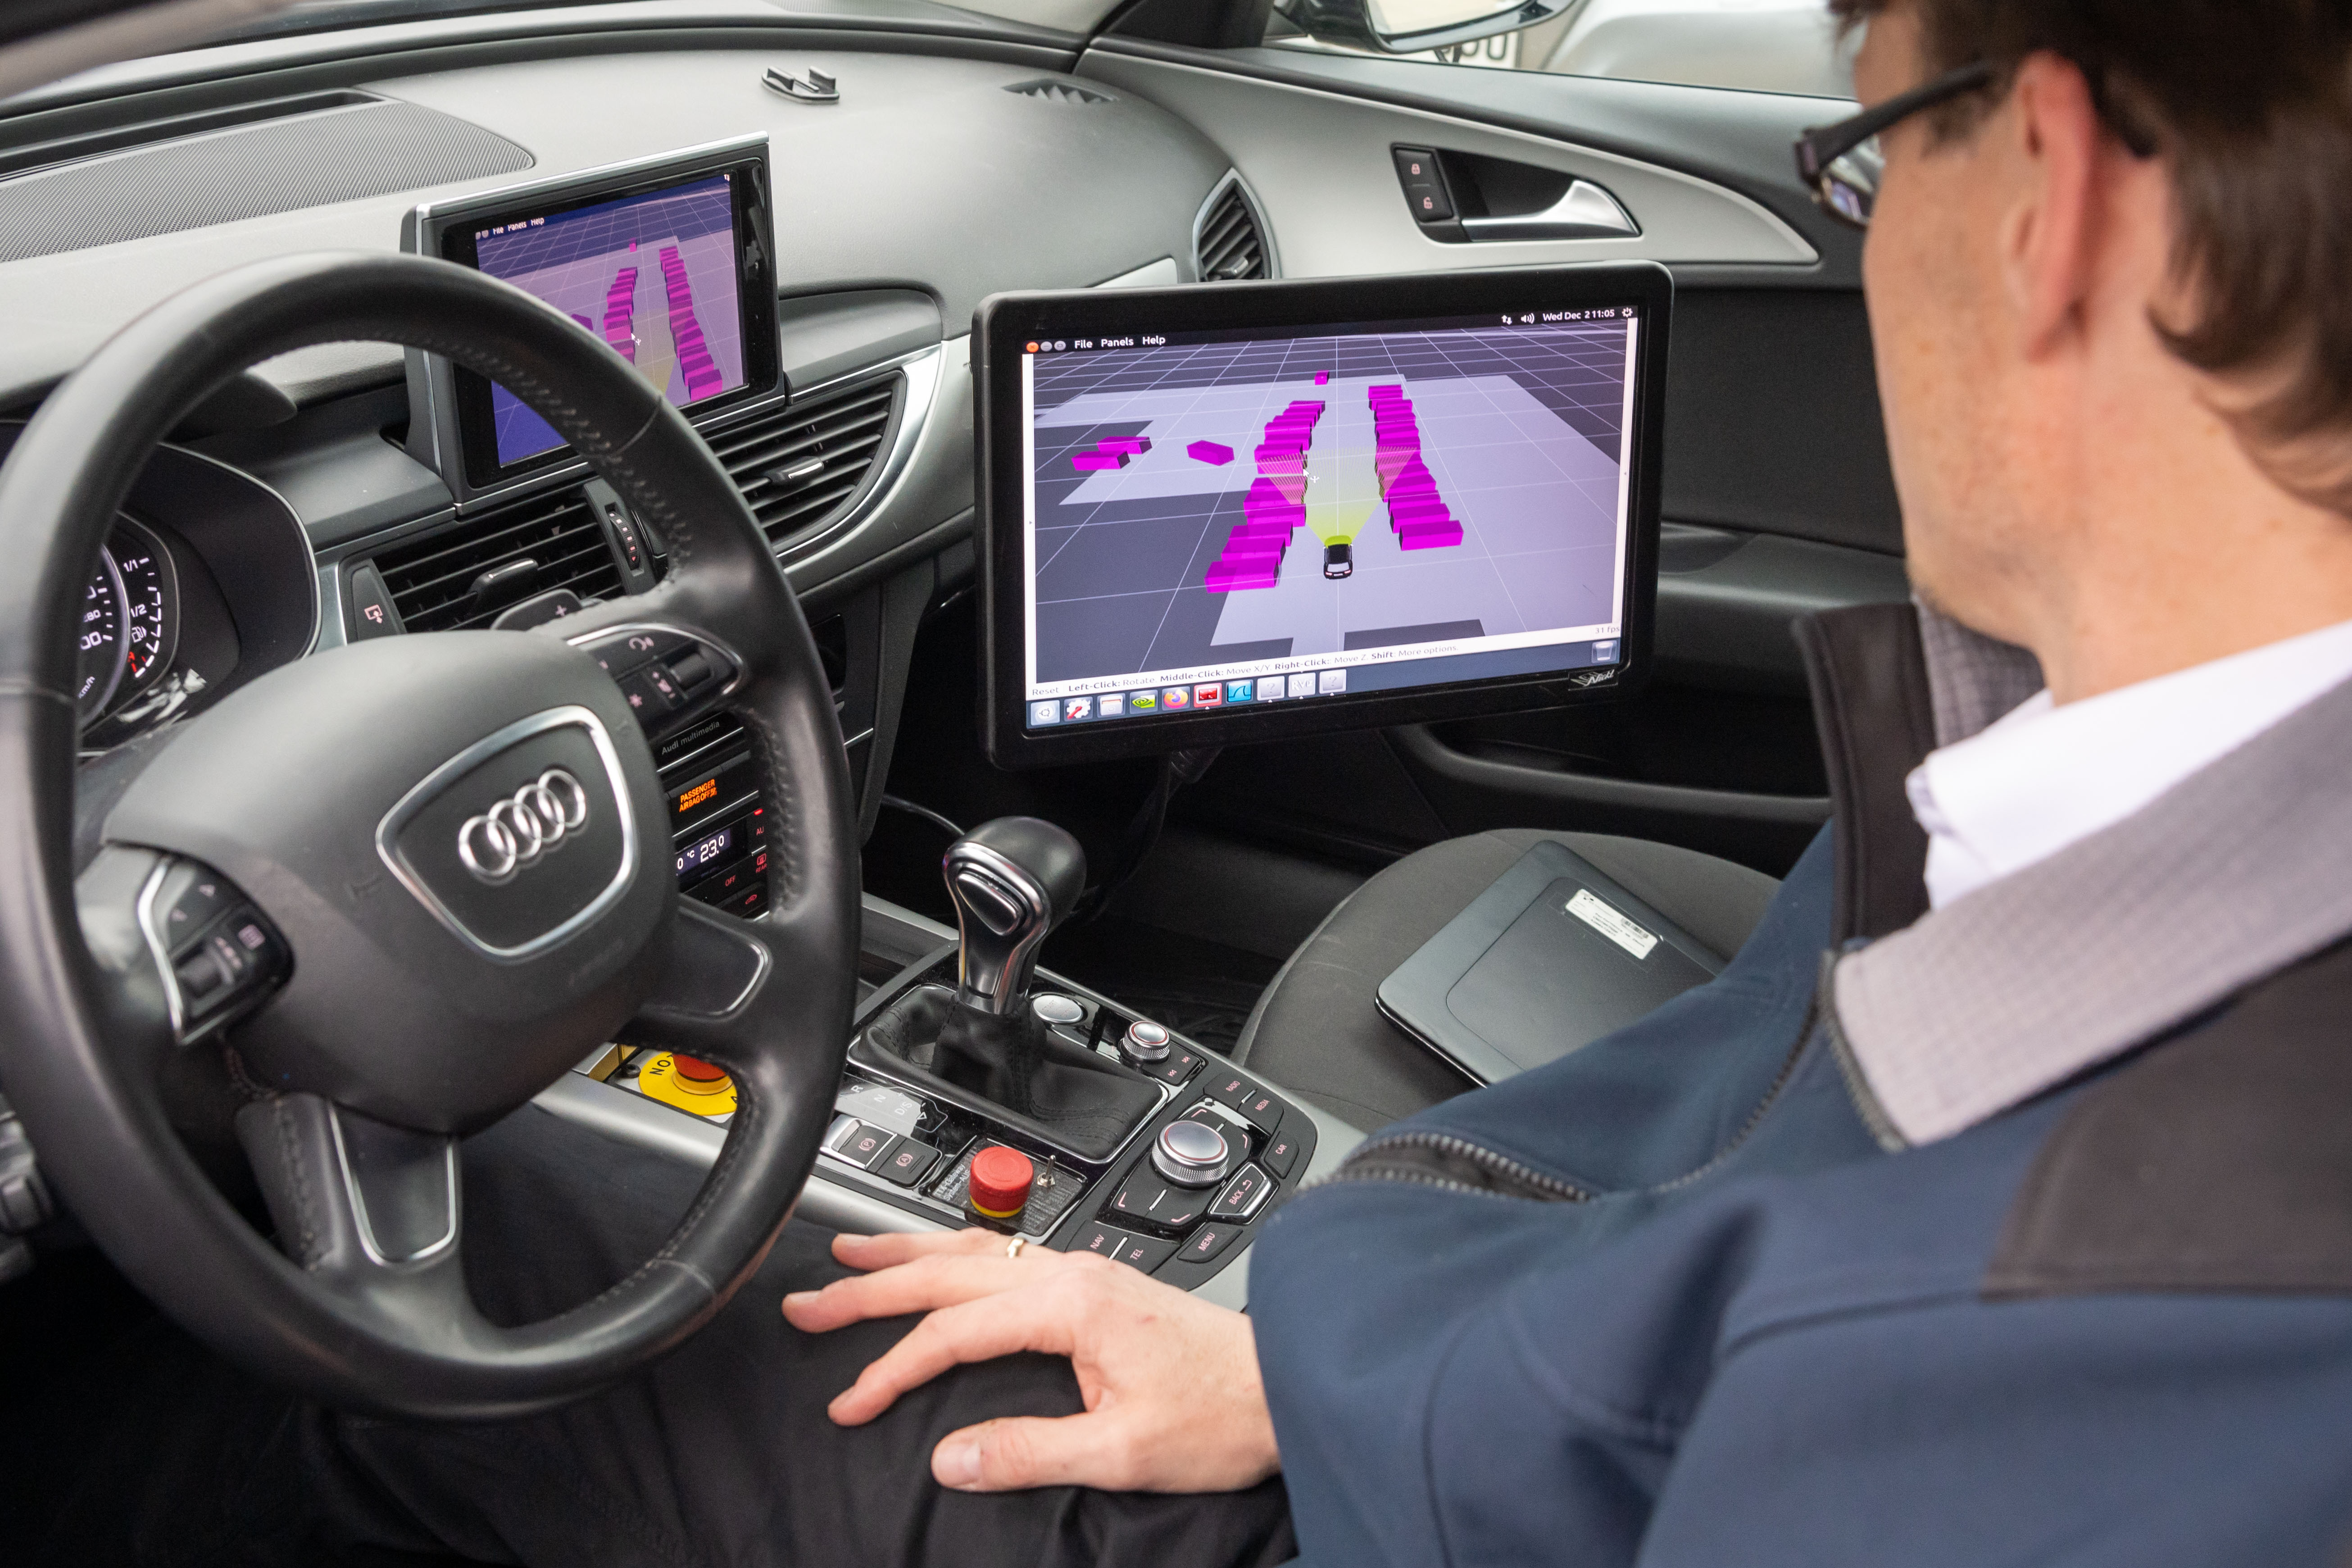 Surround sensing for all traffic situations